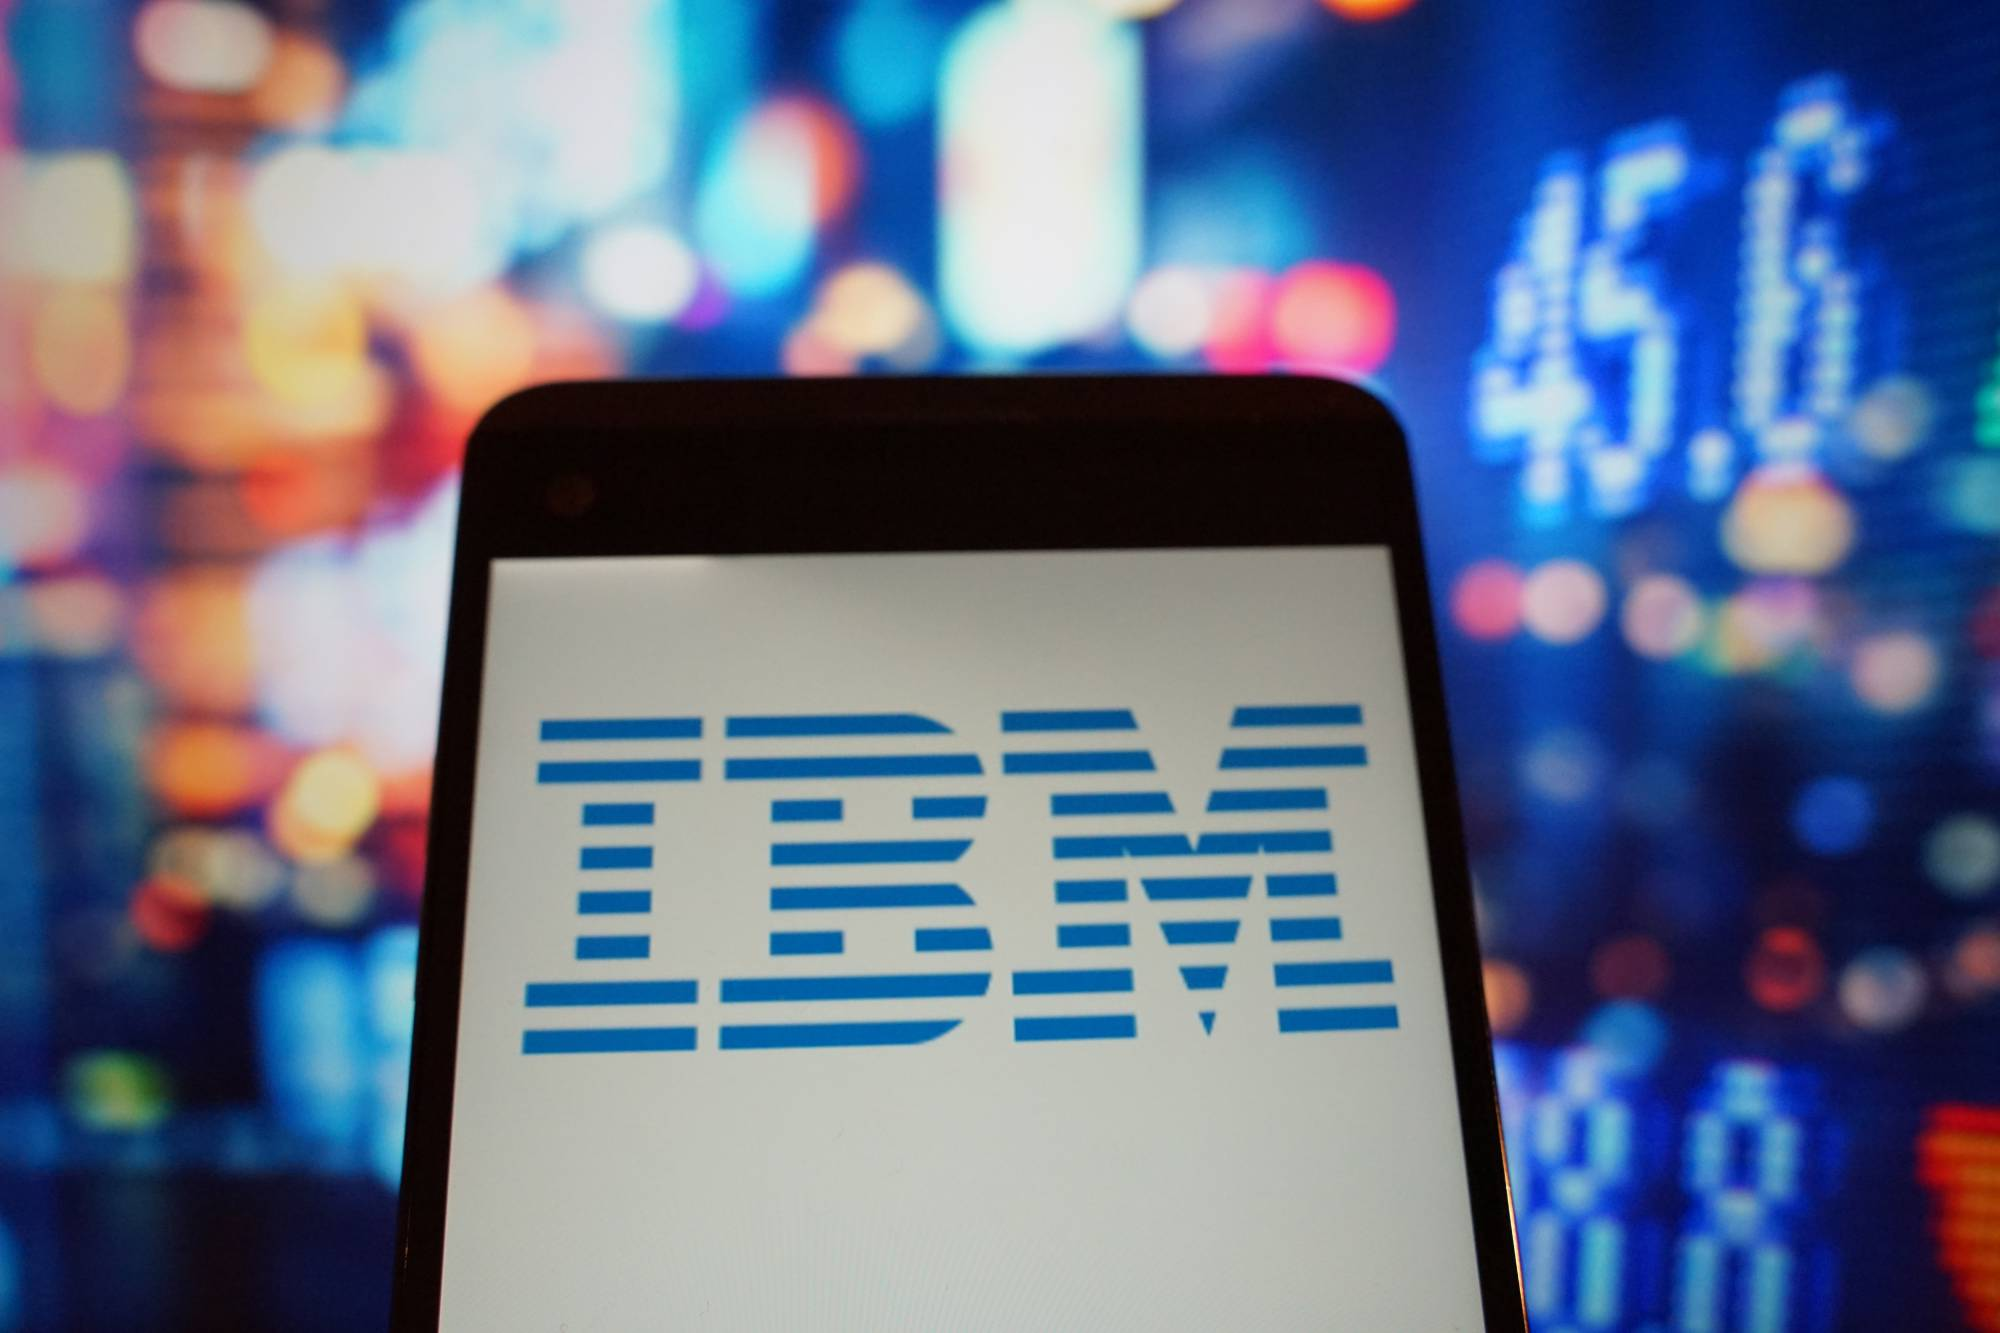 The logo of IBM is seen in a smartphone